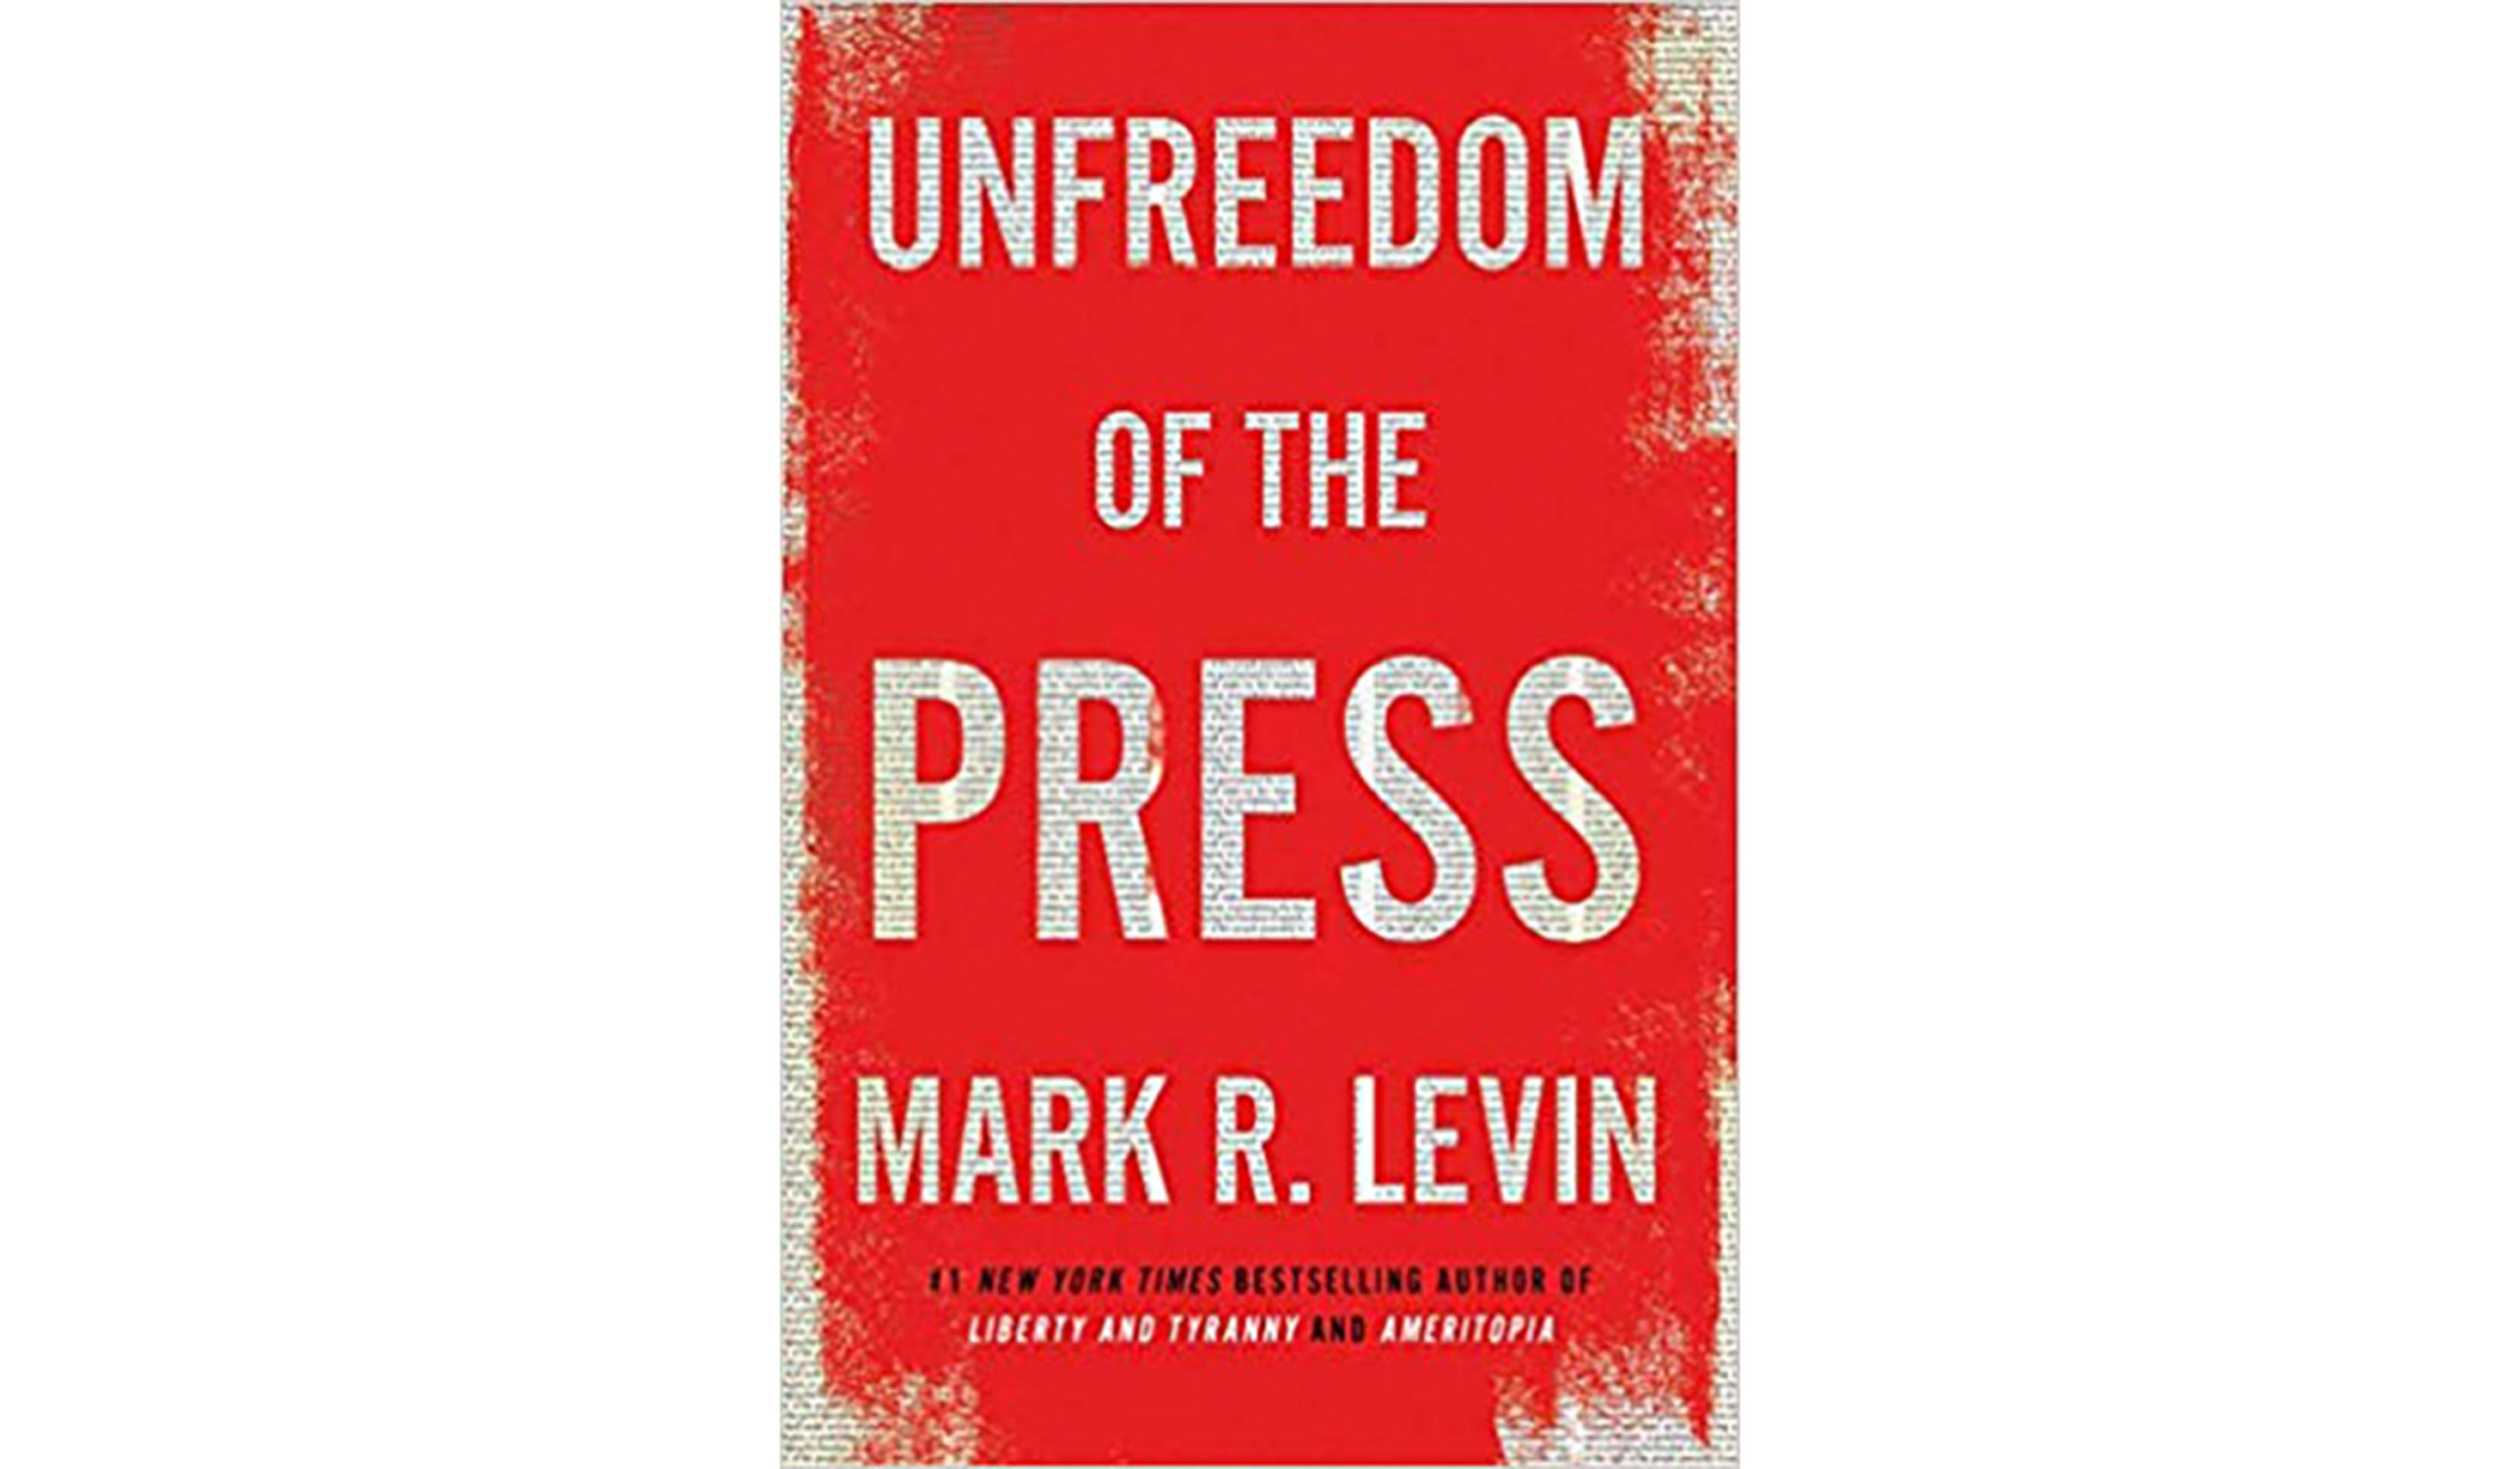 BOOK REVIEW: 'Unfreedom of the Press' Mark R. Levin